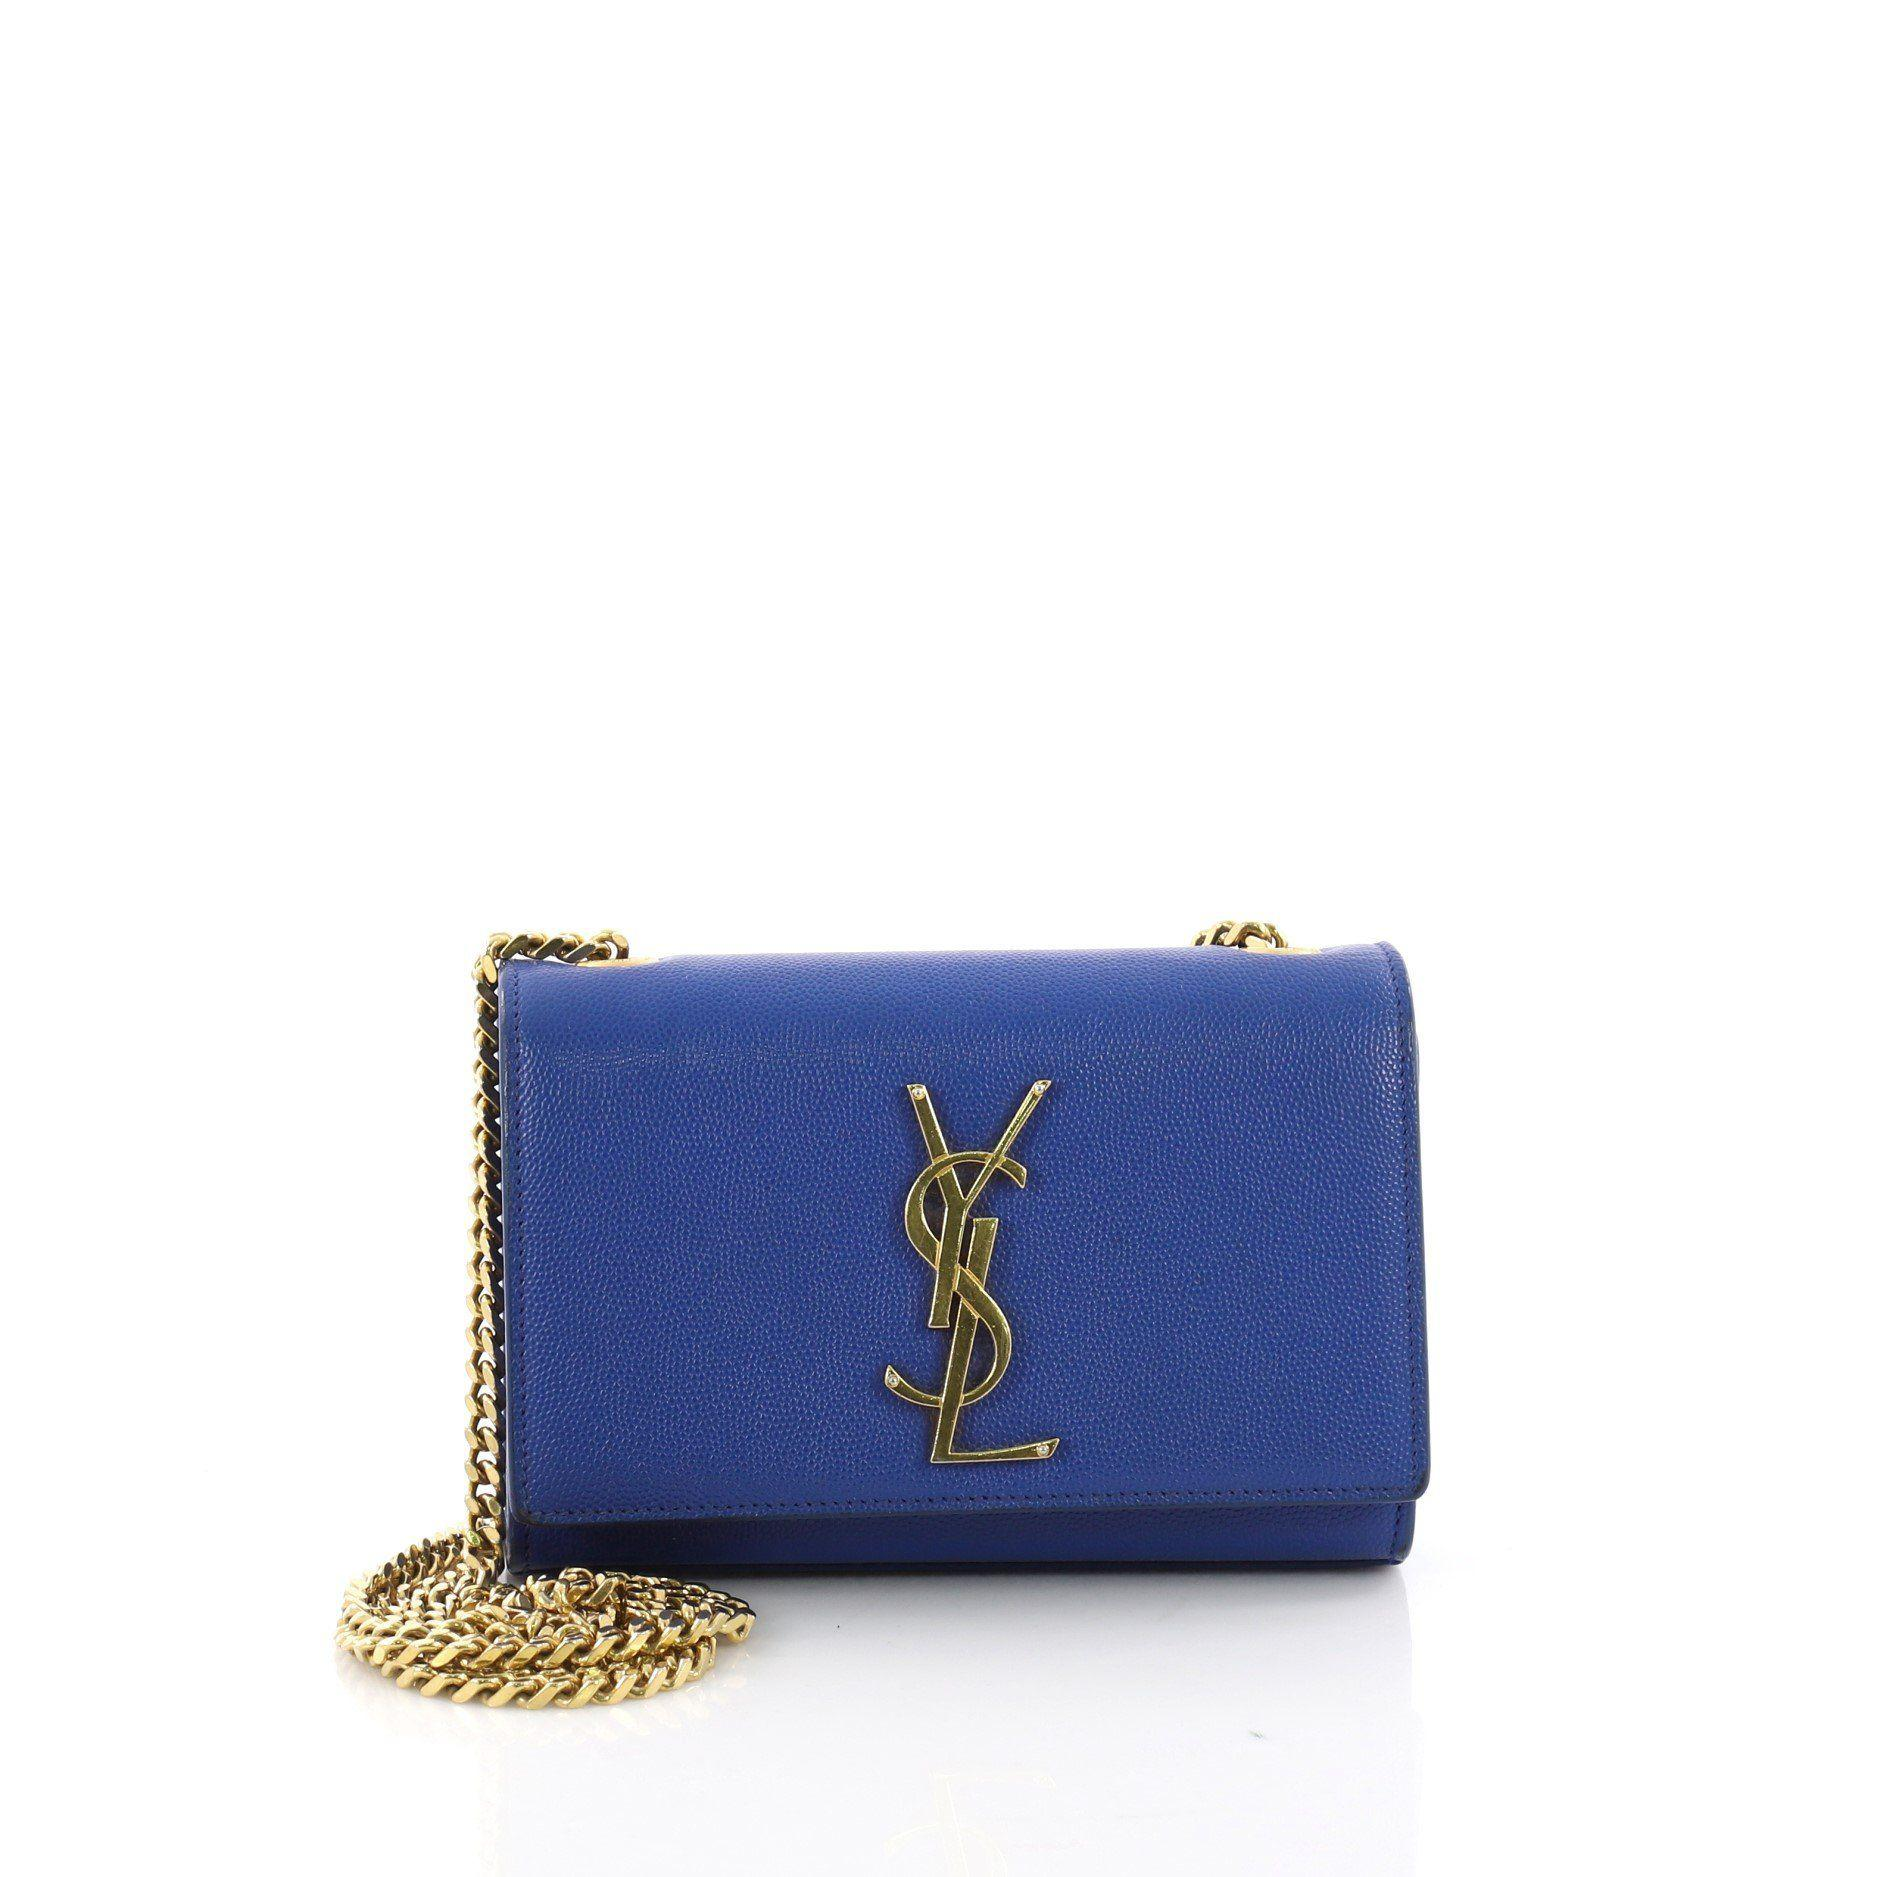 38c53dce05bd Saint Laurent. Women s Blue Pre Owned Classic Monogram Crossbody Bag Grainy  Leather Small